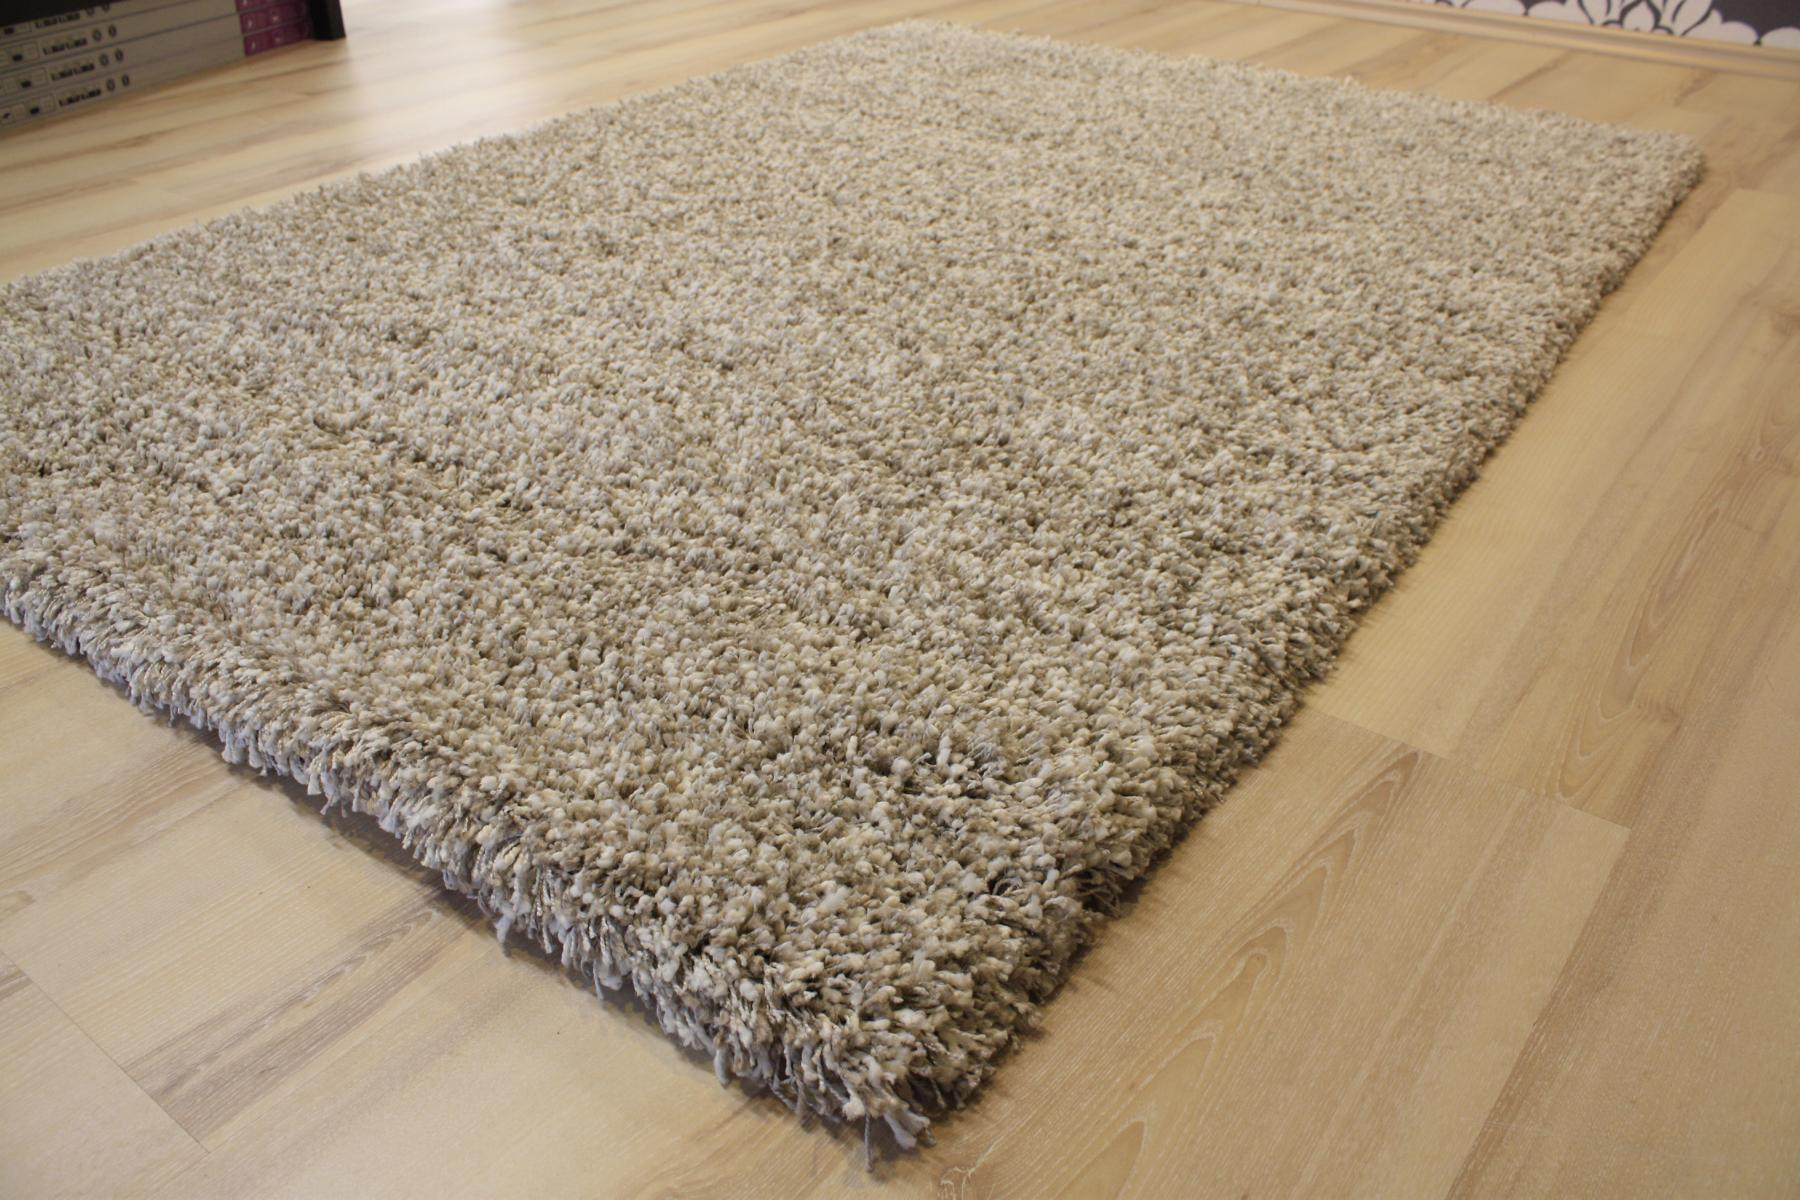 High Pile Carpet Rug High Pile 39001 Twilight 2211 White Linen 200x200cm Ebay